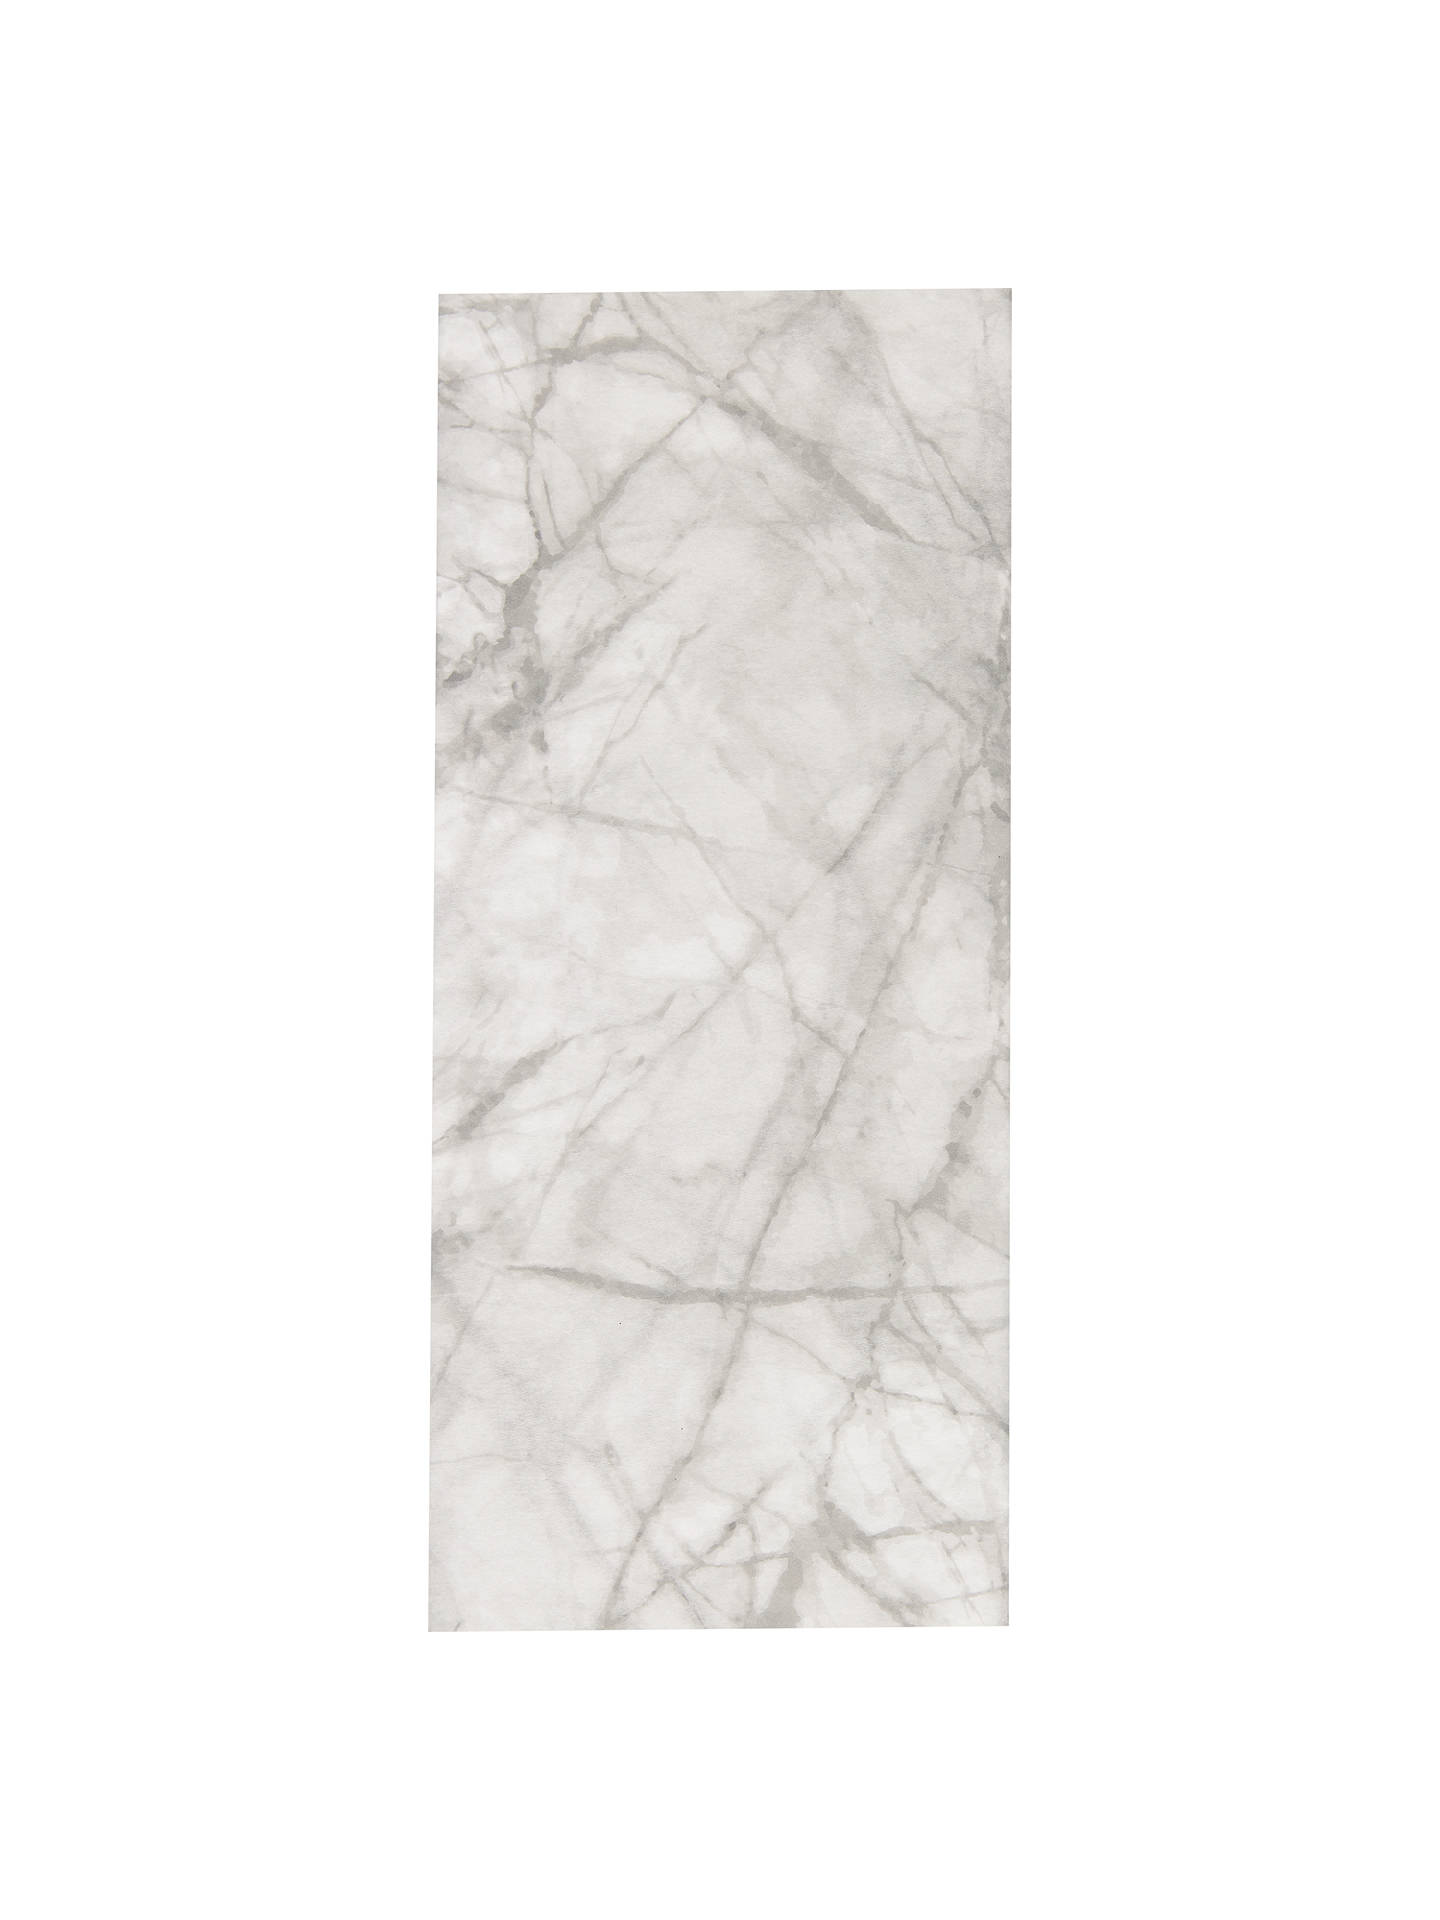 Buy John Lewis & Partners Marble Tissue Paper, 5 Sheets, White Online at johnlewis.com